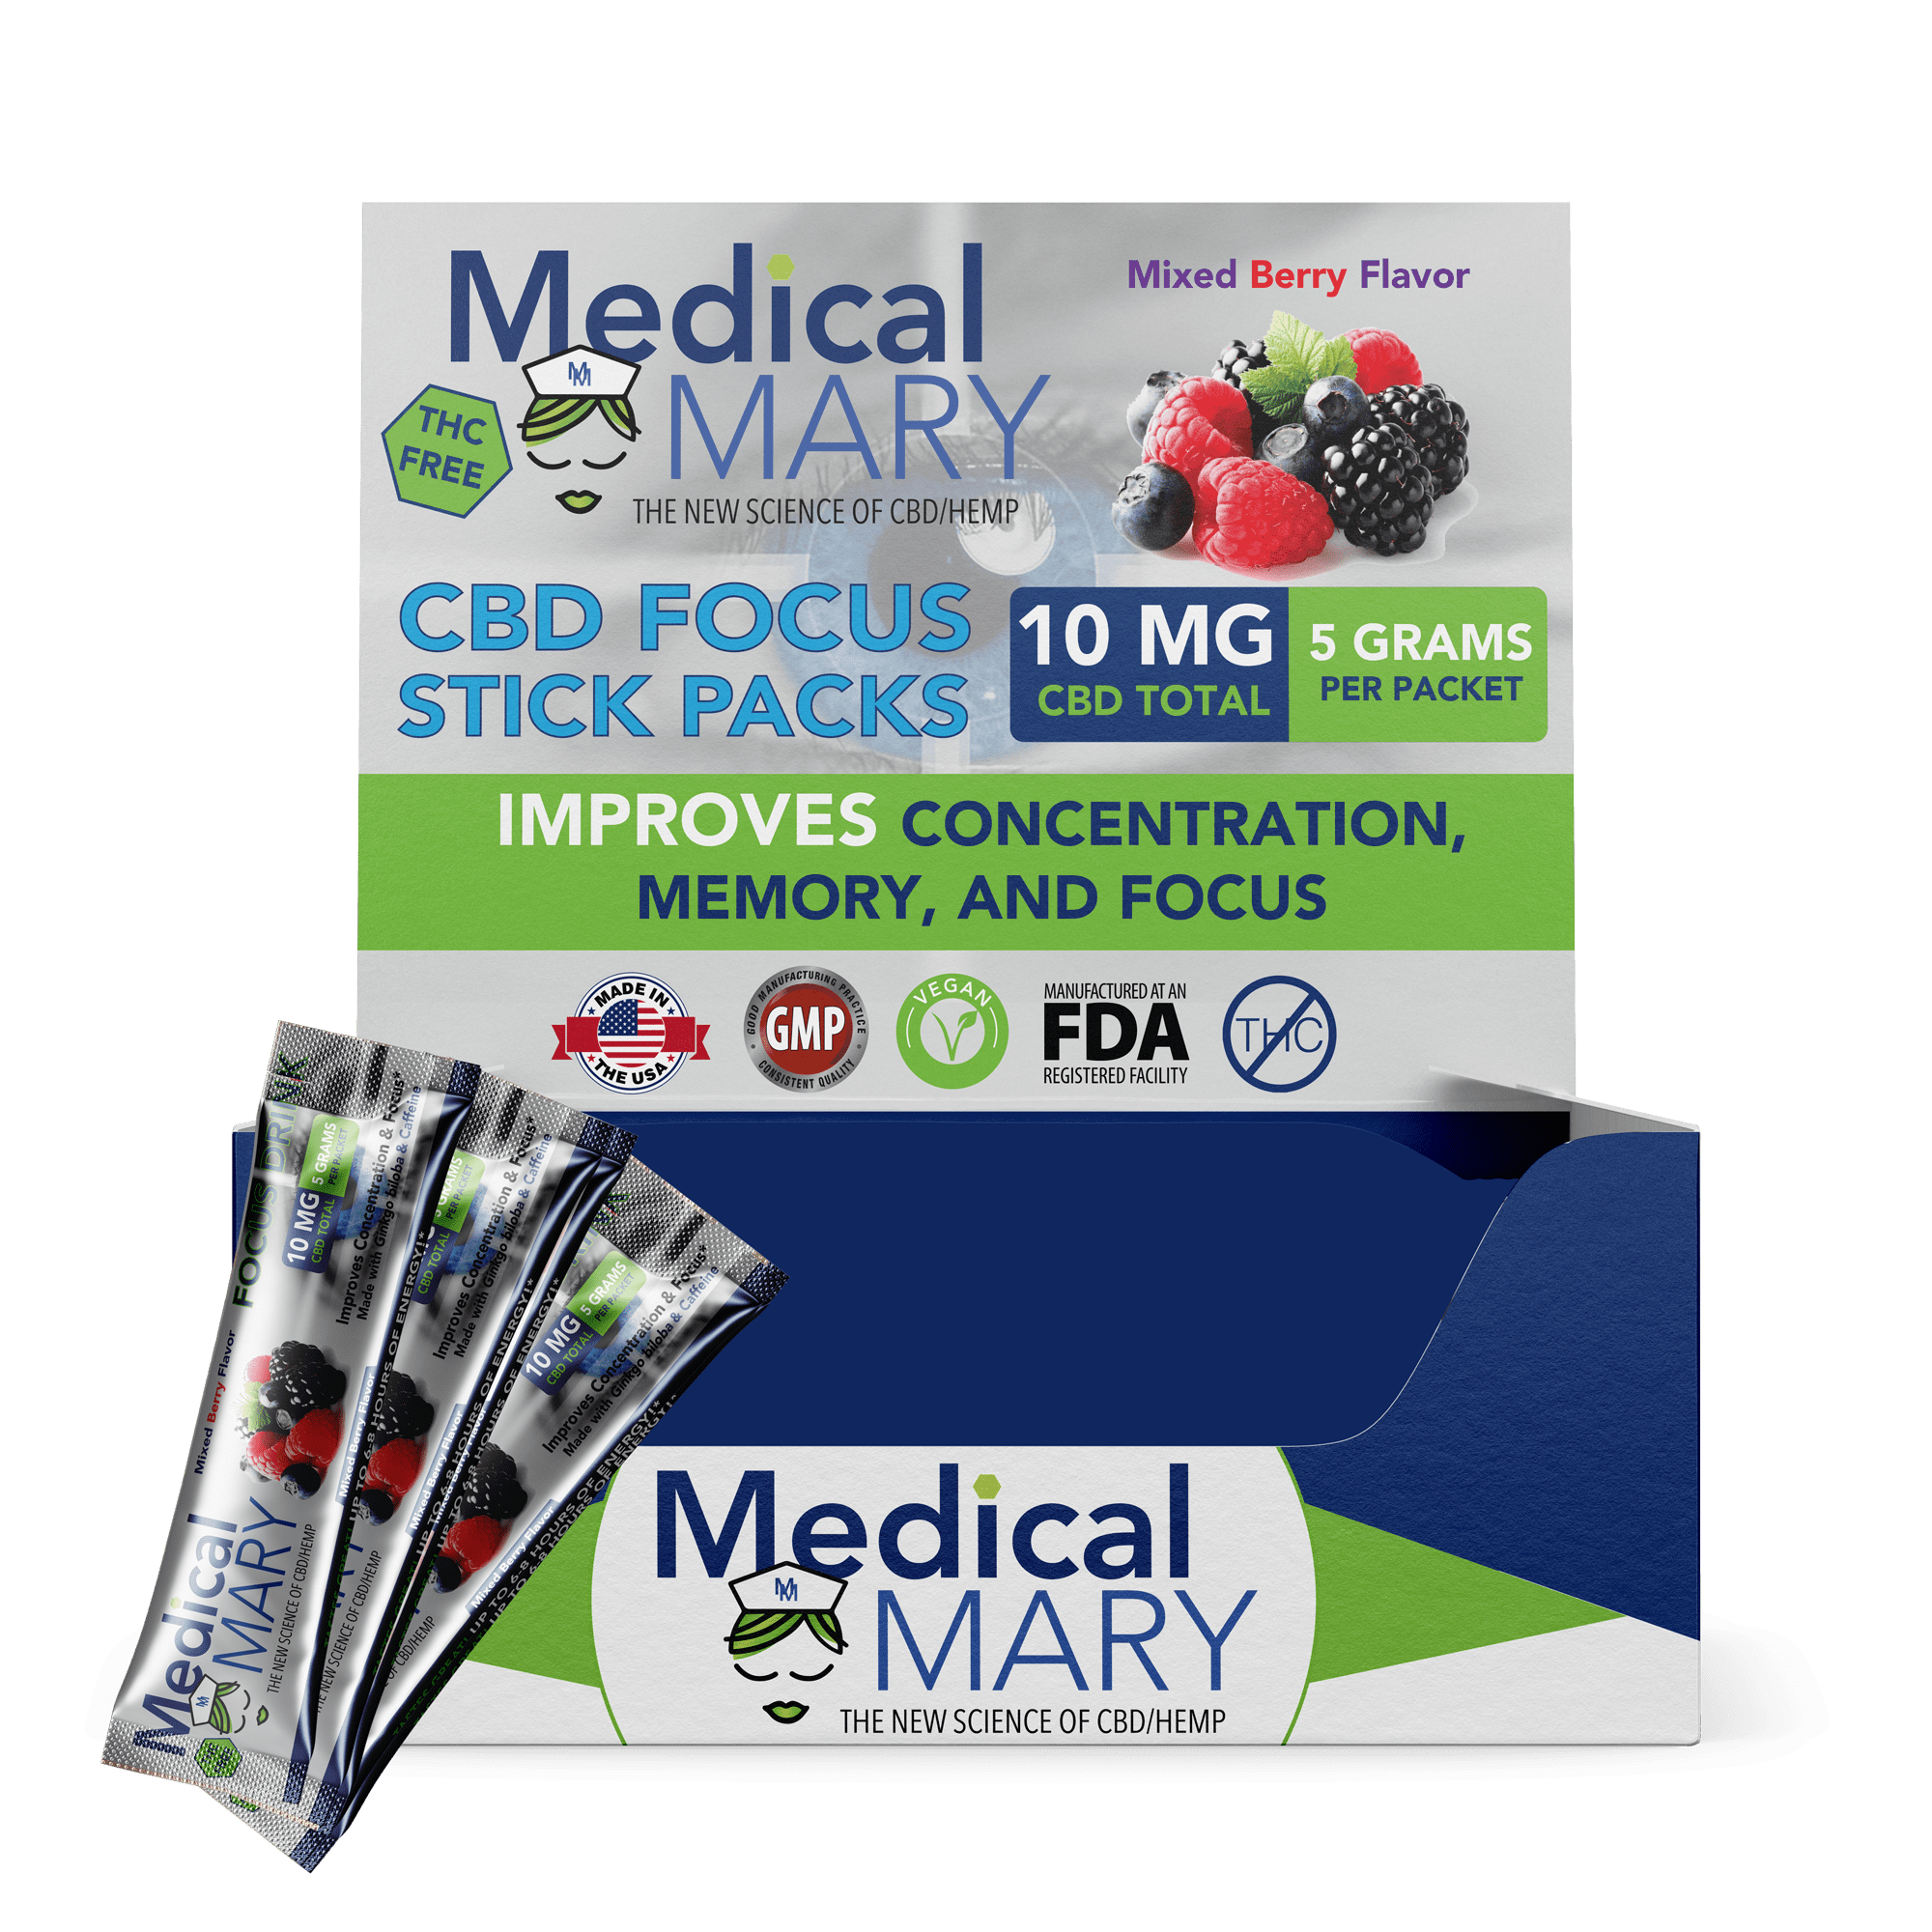 Best Private Label Cbd Products 2022